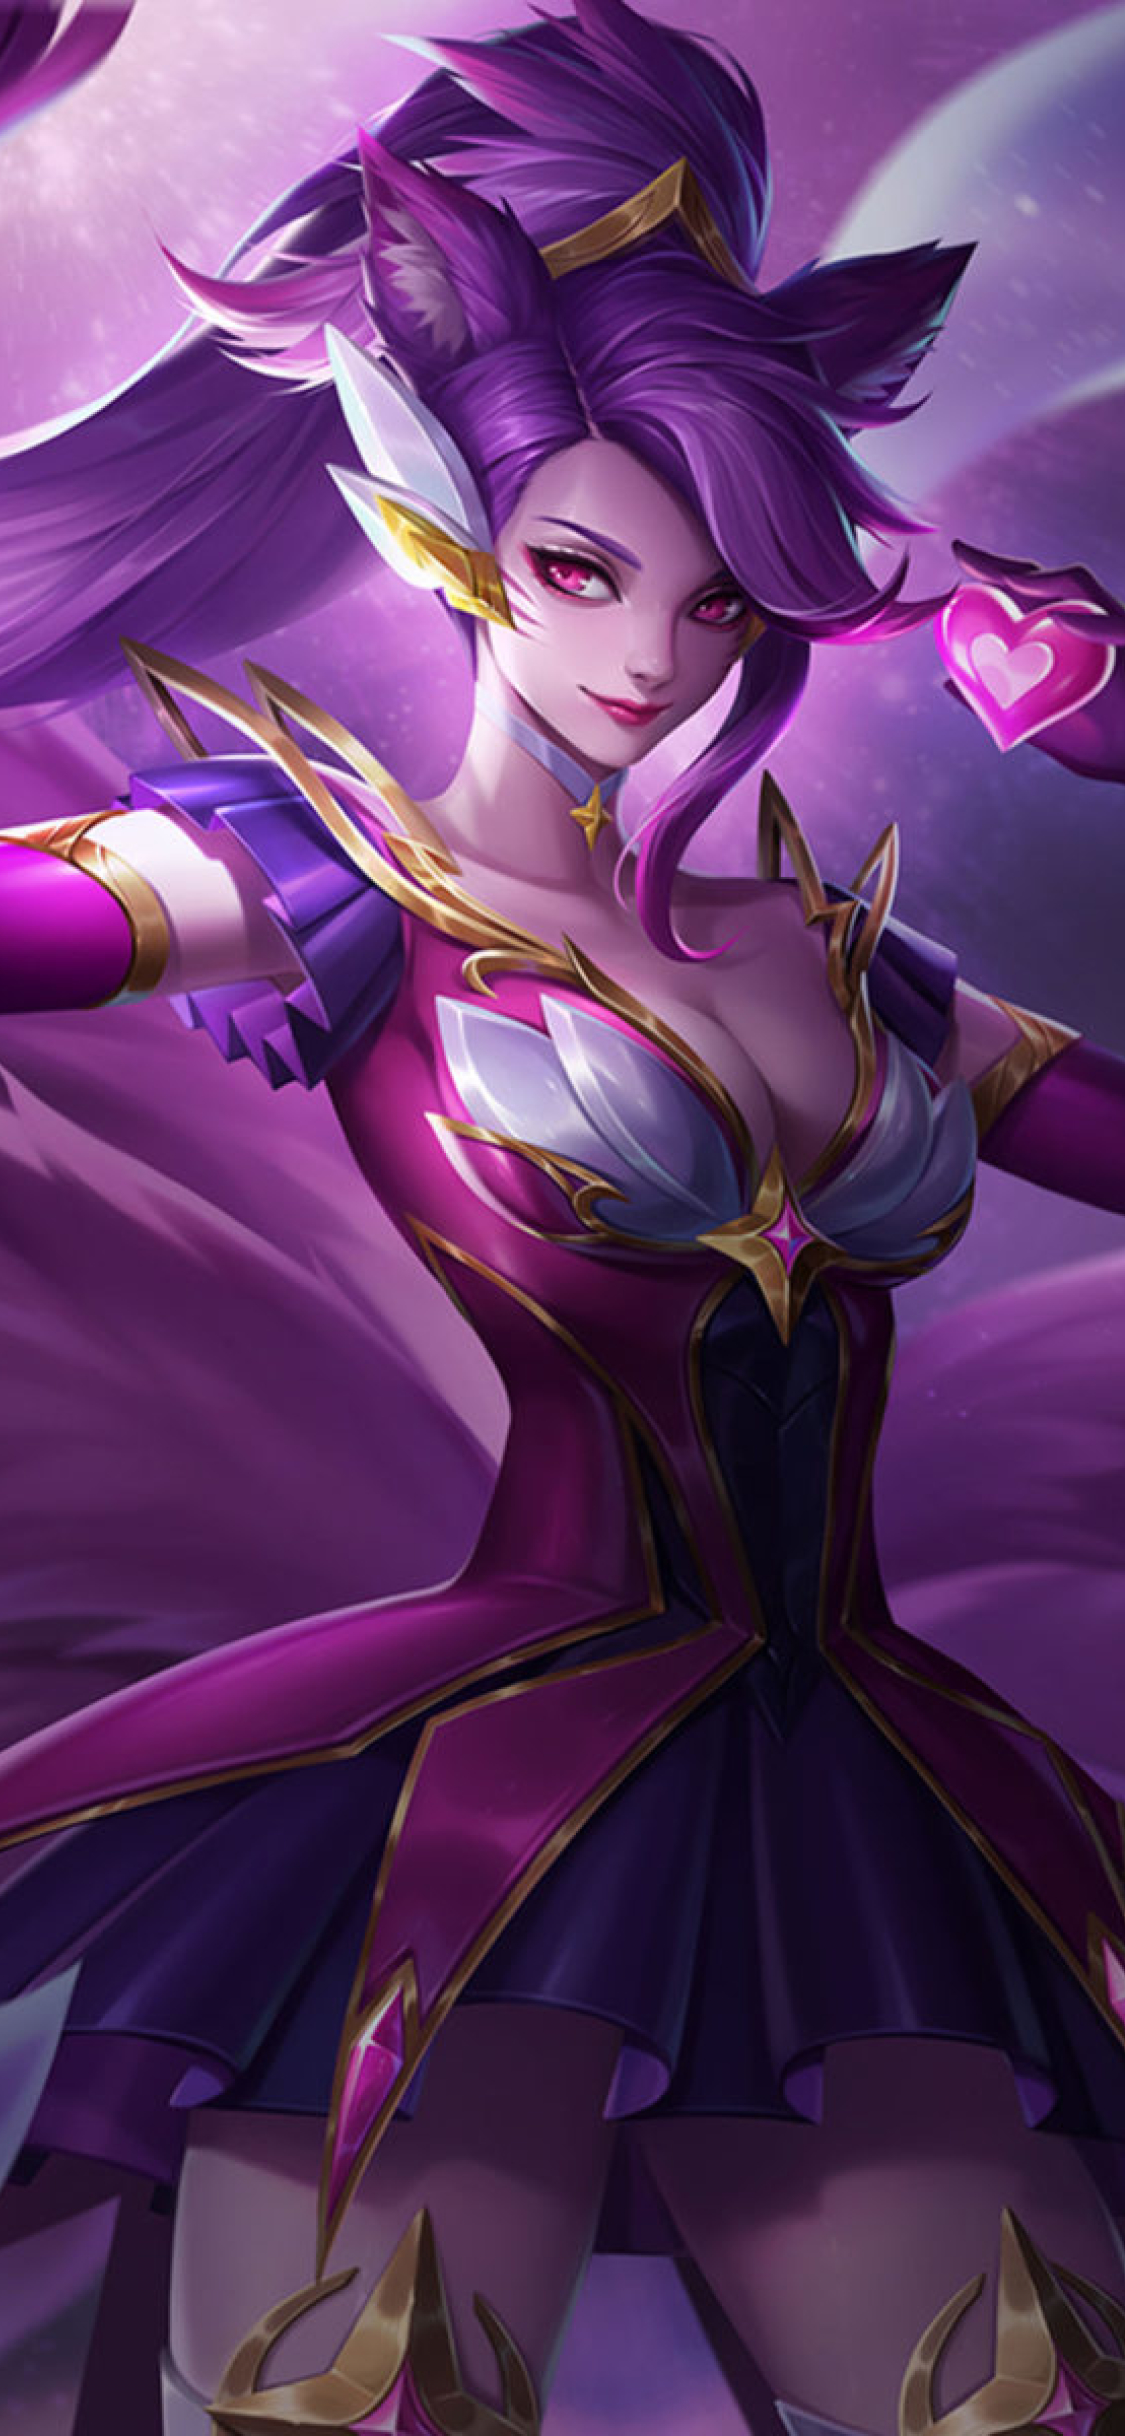 1125x2436 Ahri From League Of Legends Iphone Xs Iphone 10 Iphone X